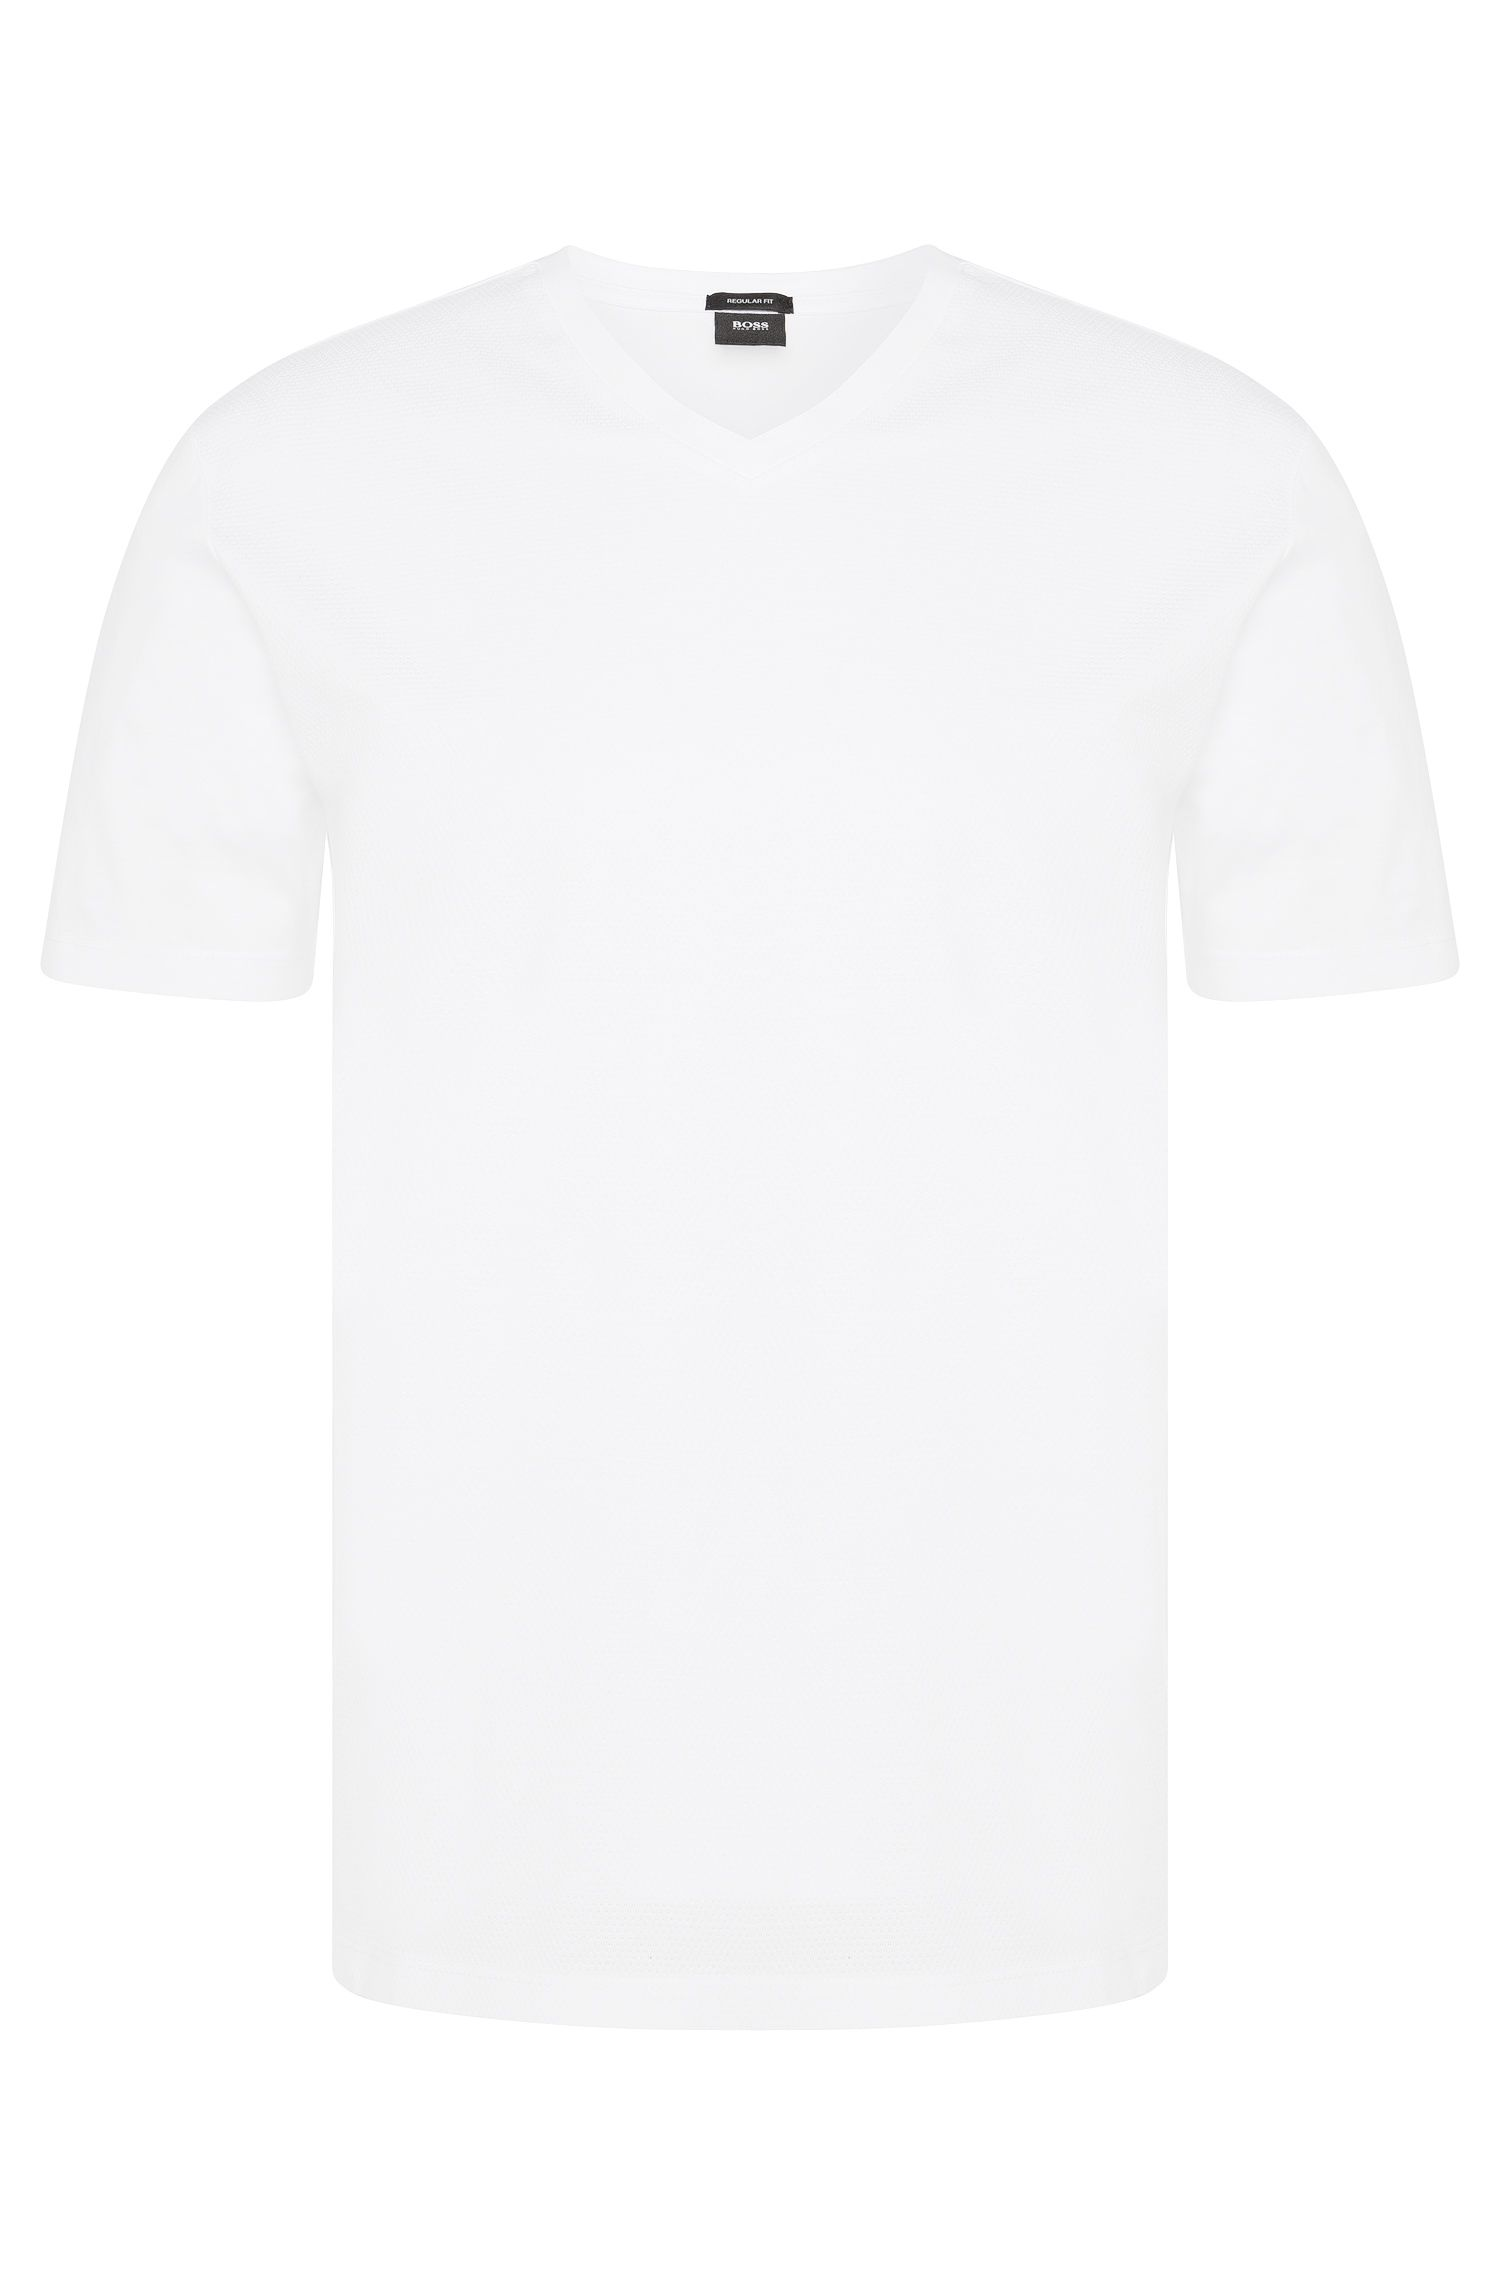 Regular-Fit T-Shirt aus Baumwolle mit perforierter Front: 'Teal 02'